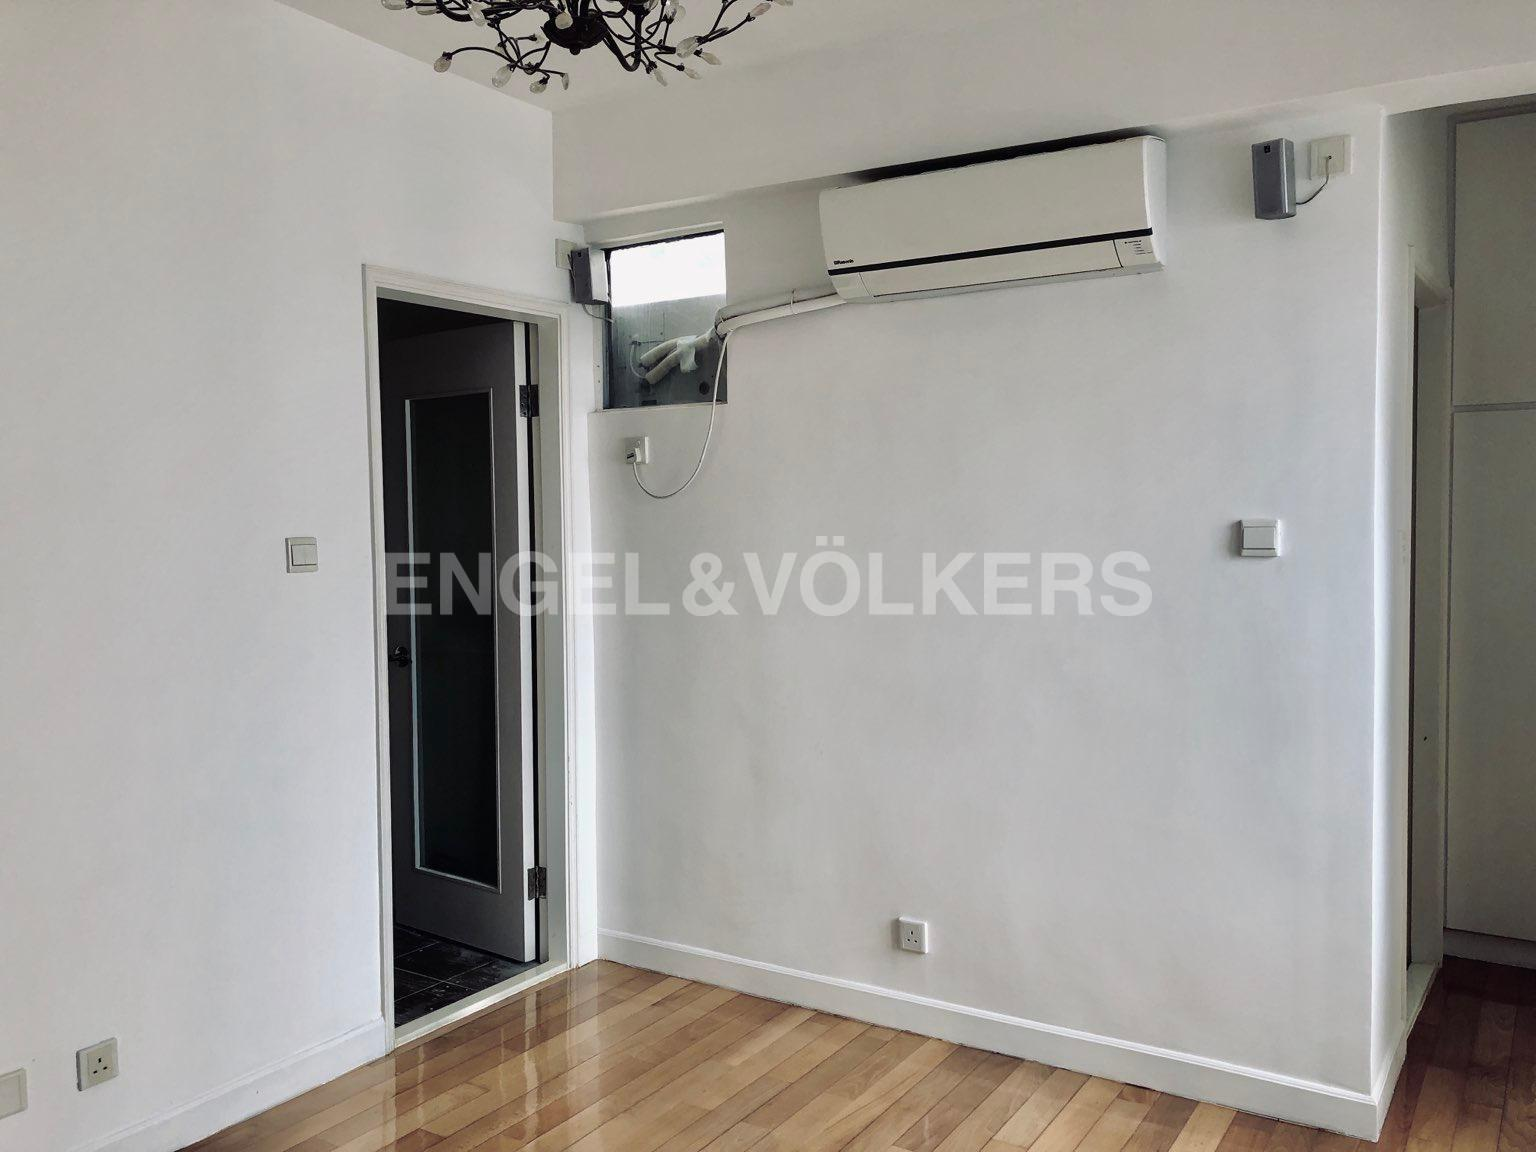 Apartment in Mid Level West / Pok Fu Lam - ALL FIT GARDEN 百合苑